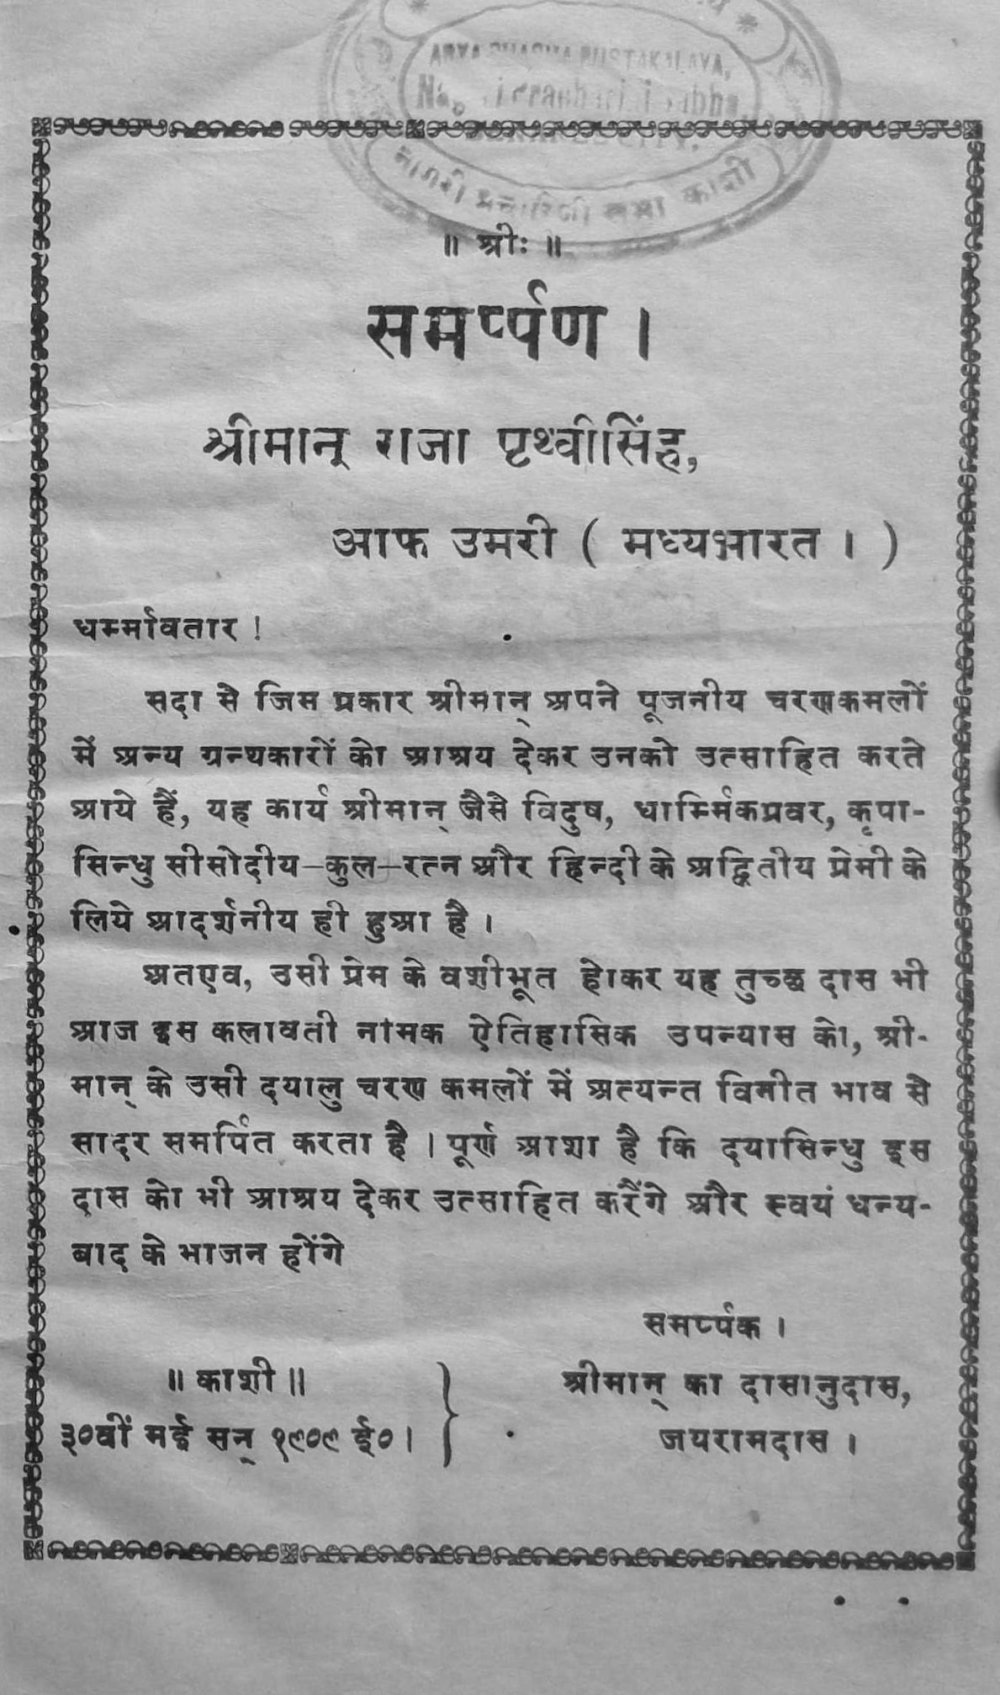 Fig. 4: Dedication page of Jairam Das Gupt's Kalavati (1909). While the title page of this novel suggests that it was self-published by the author, which is fairly common for most early Hindi novelists from this period, its dedication page sheds some light on the publishing economy of Hindi. Here, the author not only dedicates the book to a wealthy patron, but also hopes that his patron would encourage him by extending 'support'